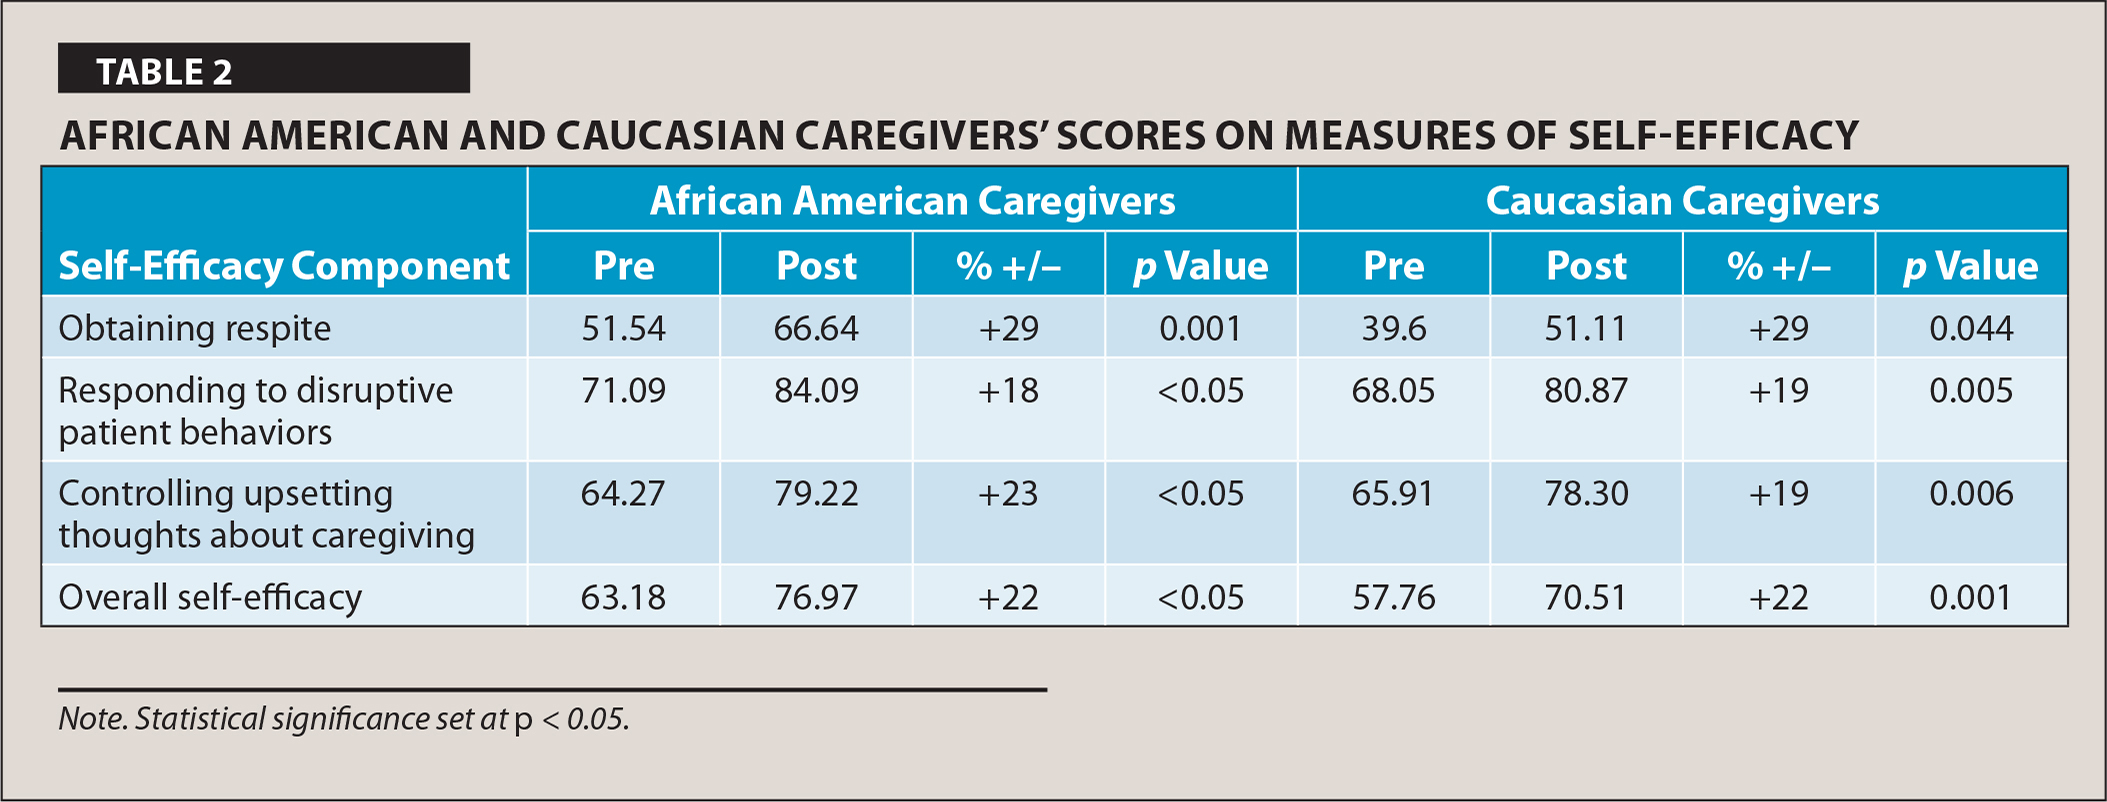 African American and Caucasian Caregivers' Scores on Measures of Self-Efficacy